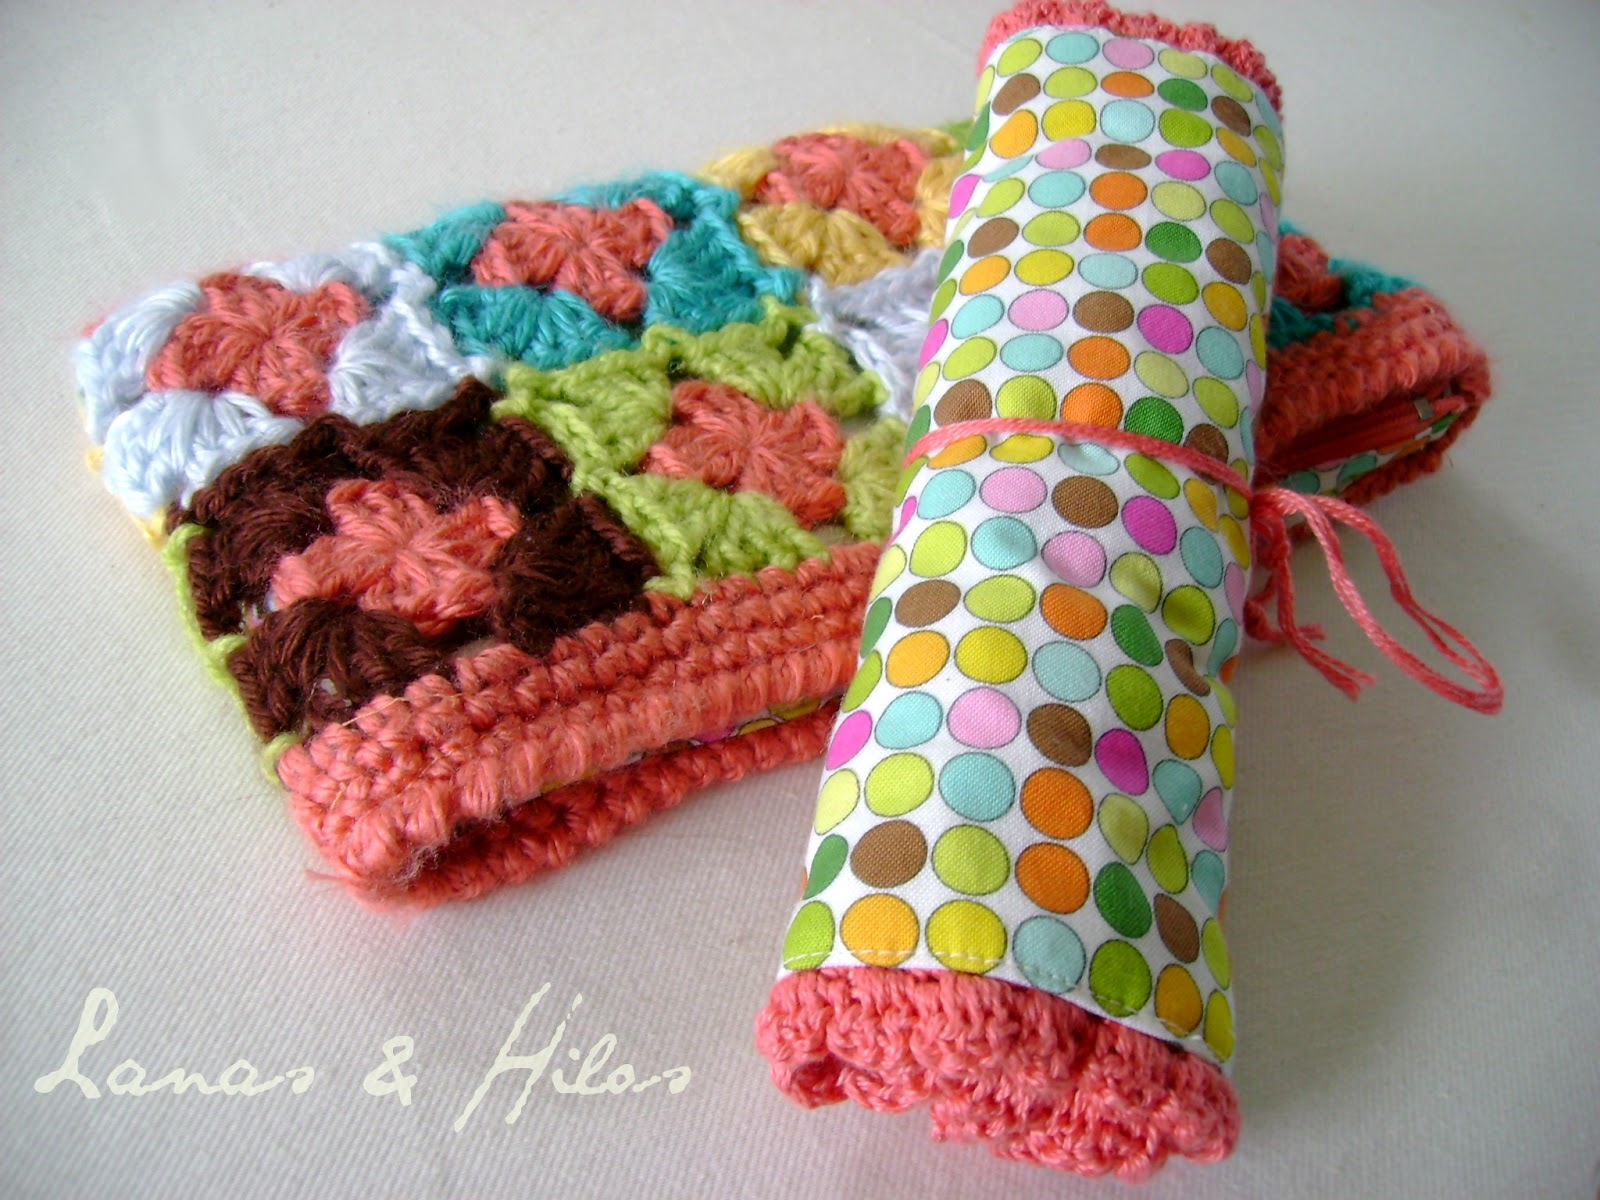 mom hada special surprise for our little knitting group: two crochet ...